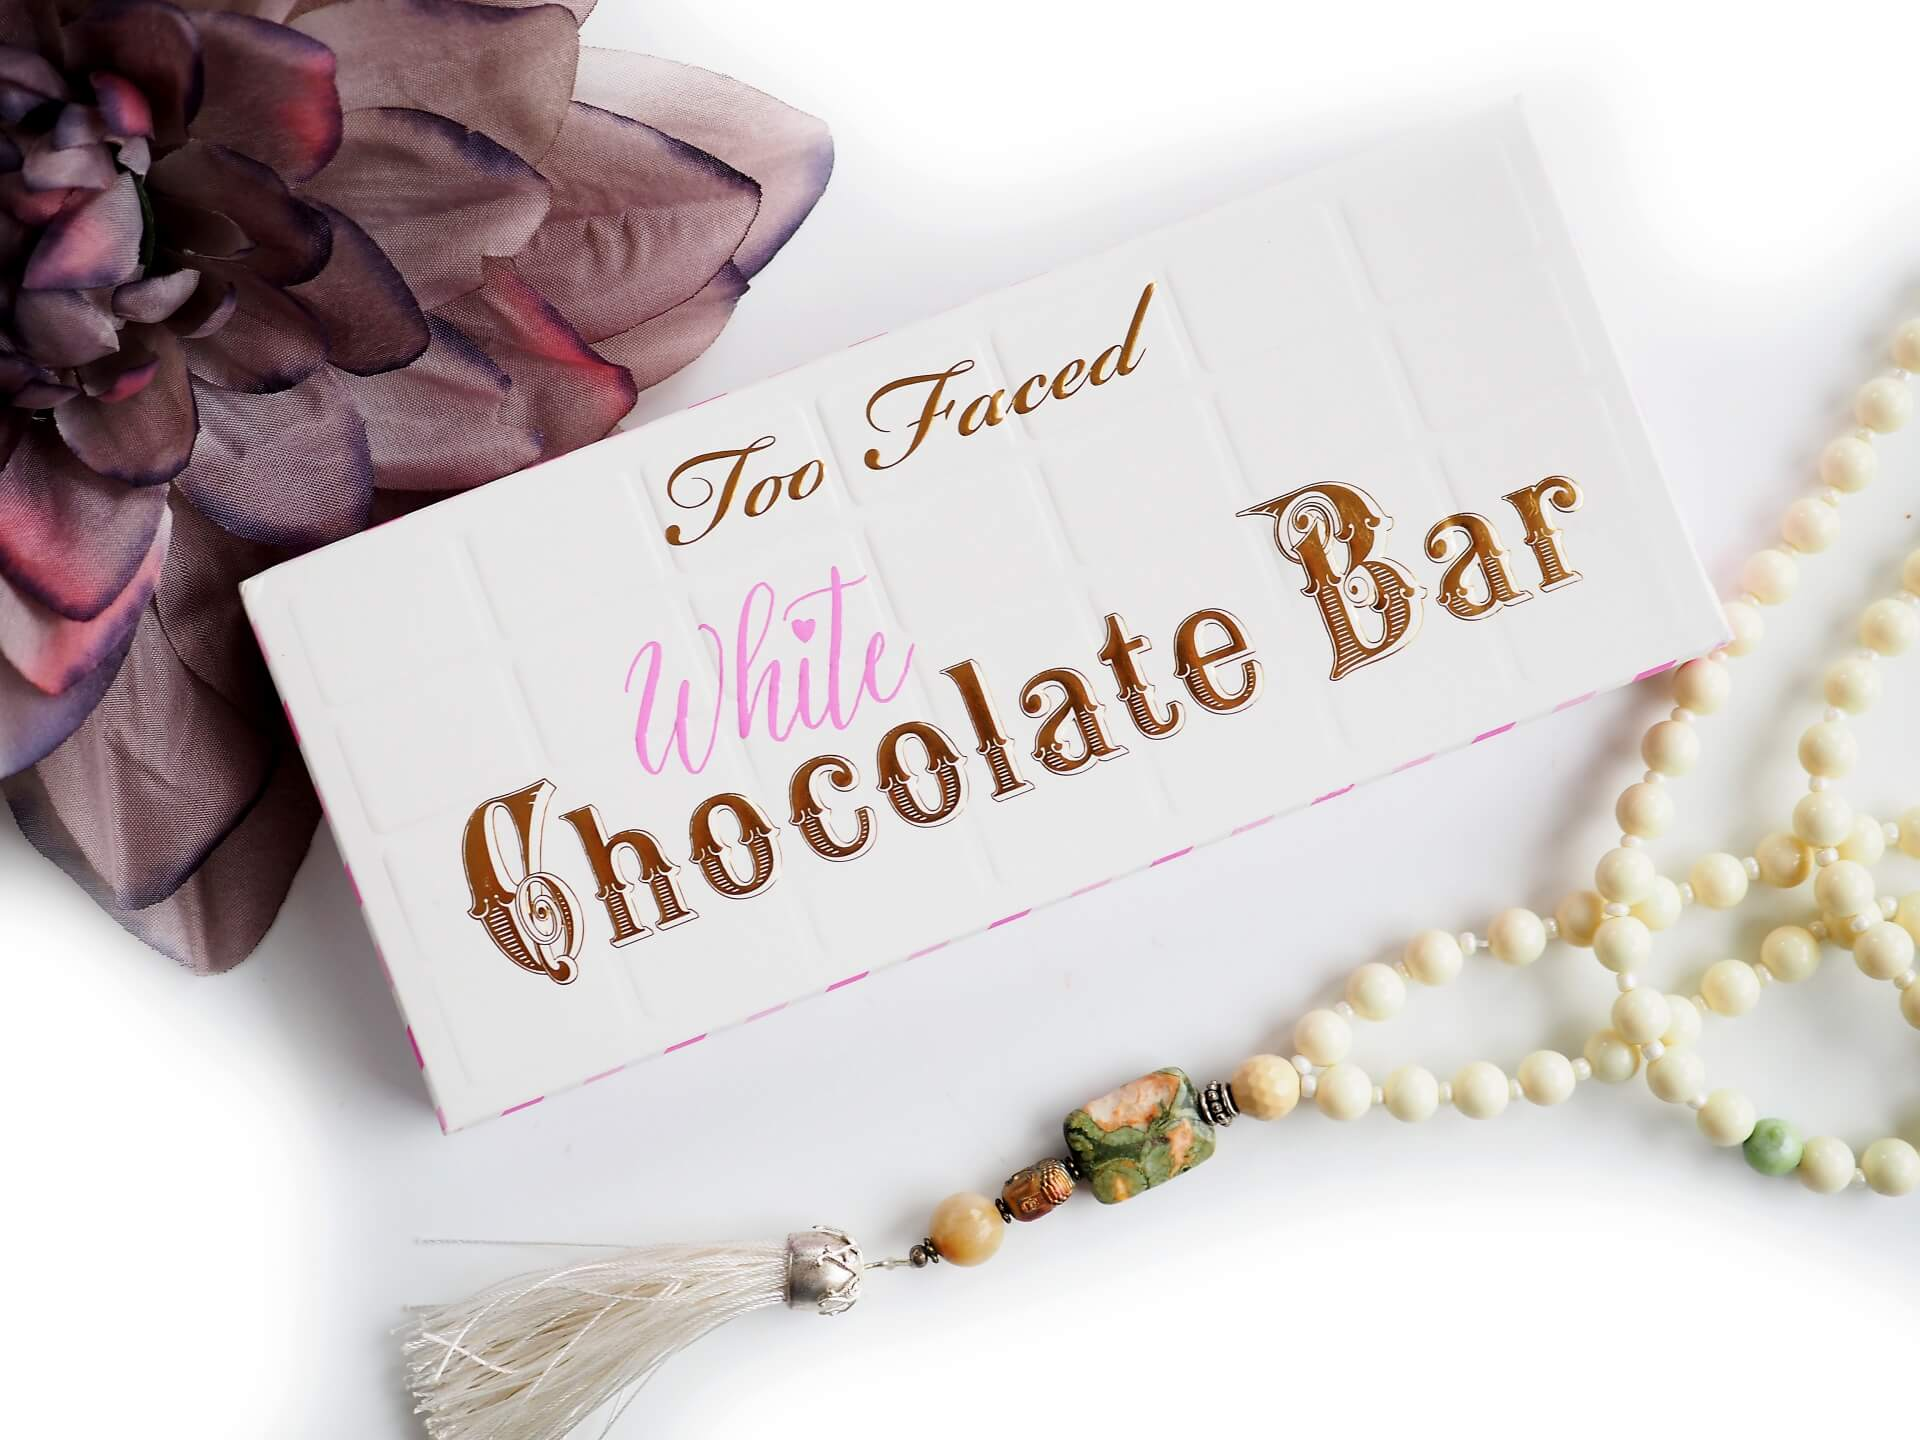 Too Faced White Chocolate Bar